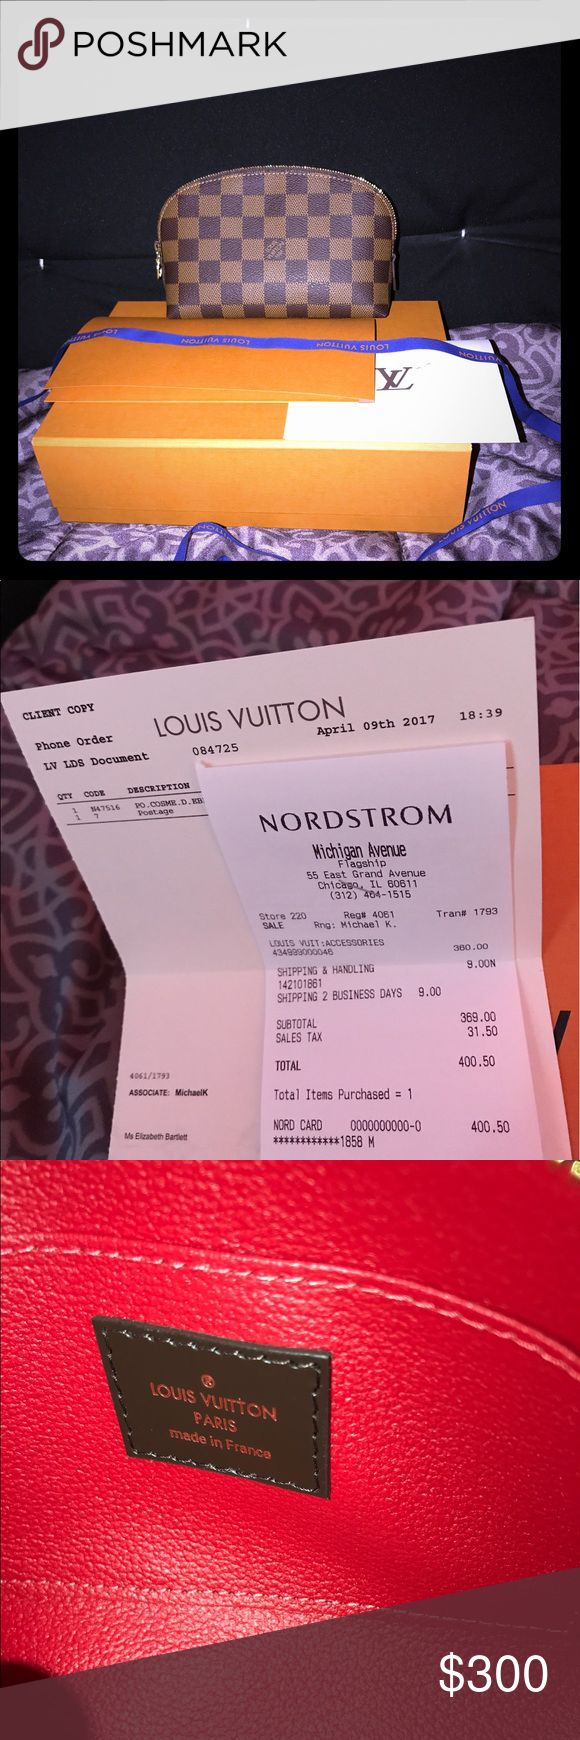 Louis Vuitton Cosmetic PM FIRM ON PRICE/NO LOWBALLERS/NO TRADES! Beautiful Louis Vuitton Damier Ebene Cosmetic PM. Purchased April 9, 2017 from the louis vuitton boutique at the chicago nordstrom store, purchased with my nordstrom credit card for $400.50. Made in France Date-Code: SR1127 In perfect like new condition comes with box, ribbon, dustbag, louis vuitton envelope with my receipt. Only reason i'm selling is because I need the money. Louis Vuitton Bags Cosmetic Bags & Cases